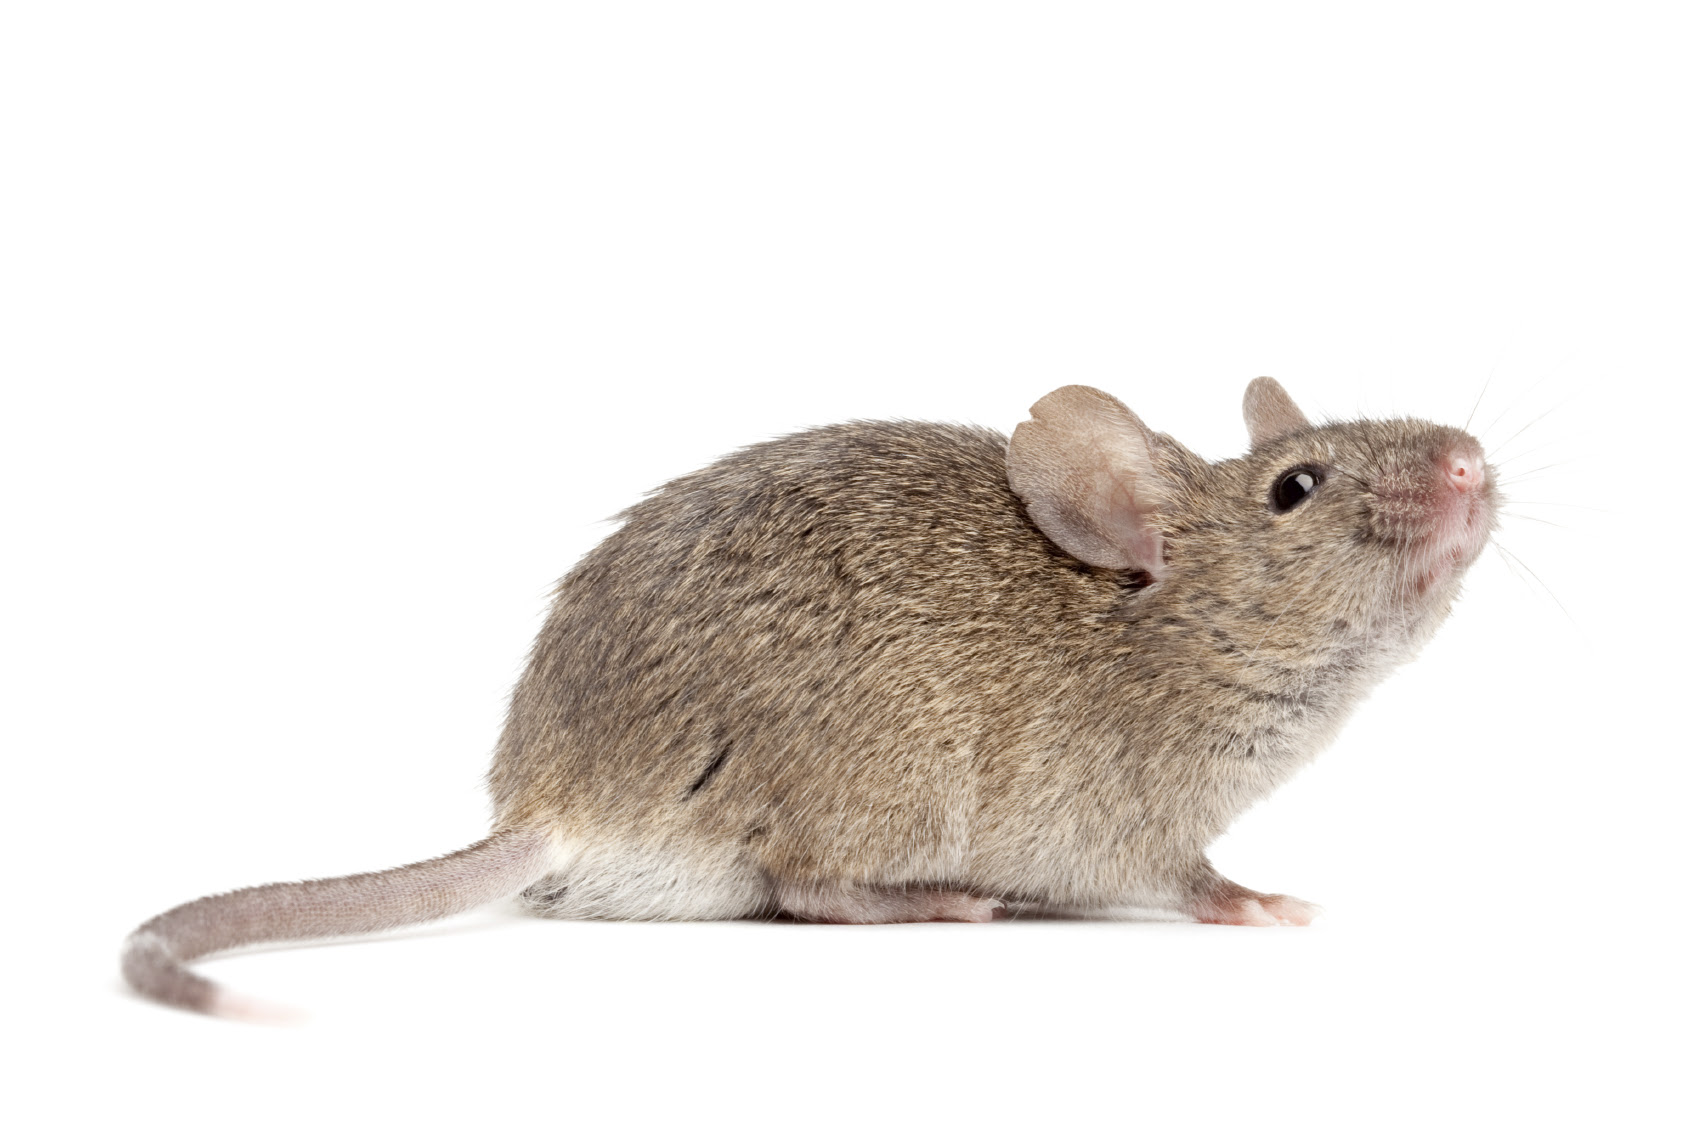 The house mouse can squeeze through an opening the size of a dime.